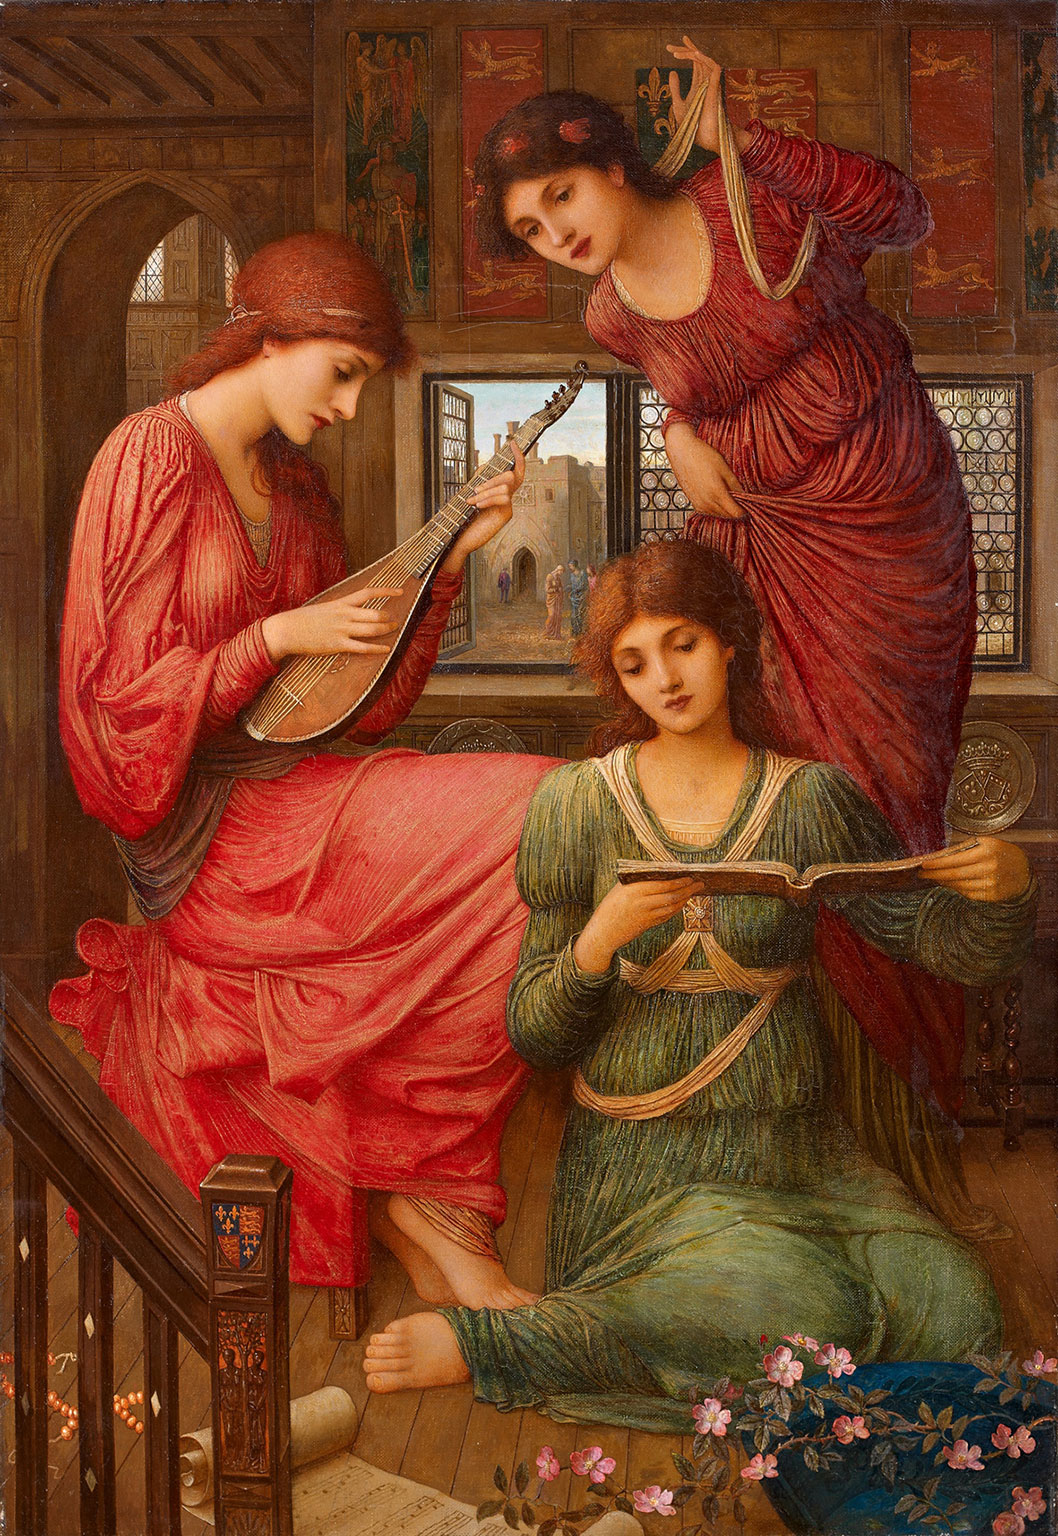 In the Golden Days, by John Melhuish Strudwick, 1907